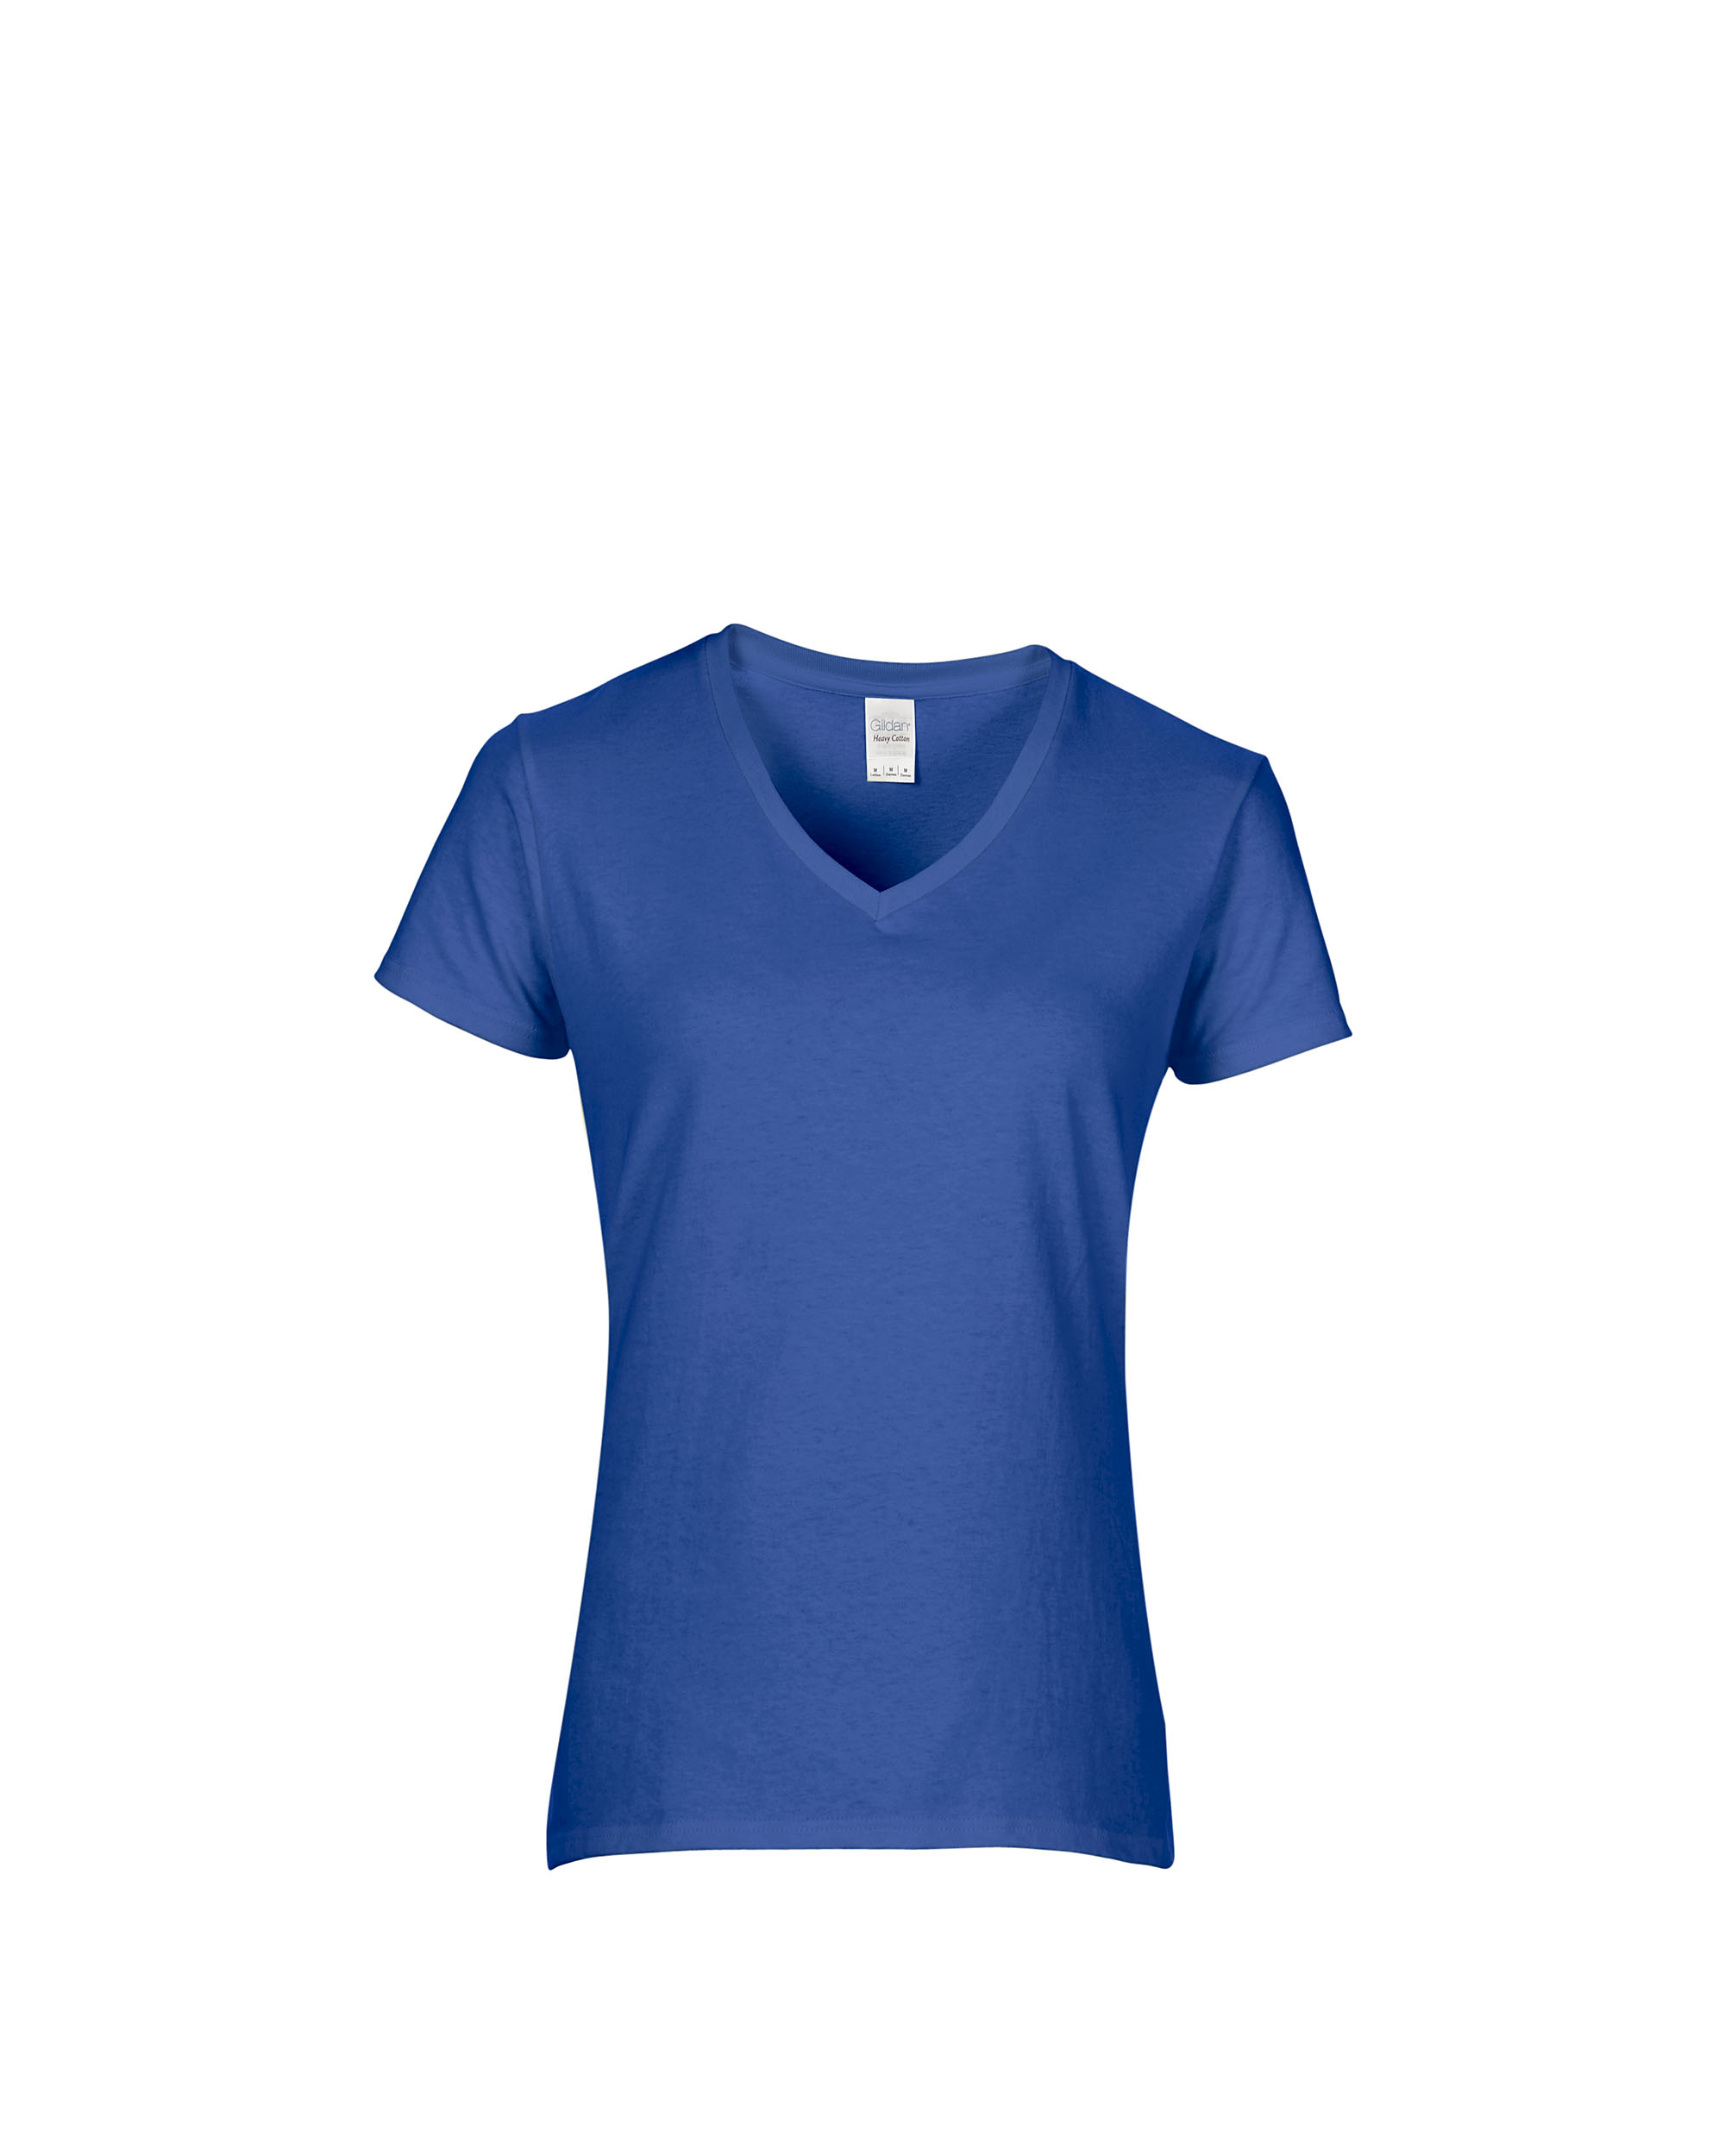 aeb18b926 Gildan Heavy Cotton™ Ladies  5.3 oz. V‑Neck T‑Shirt - Team Shirt Pros